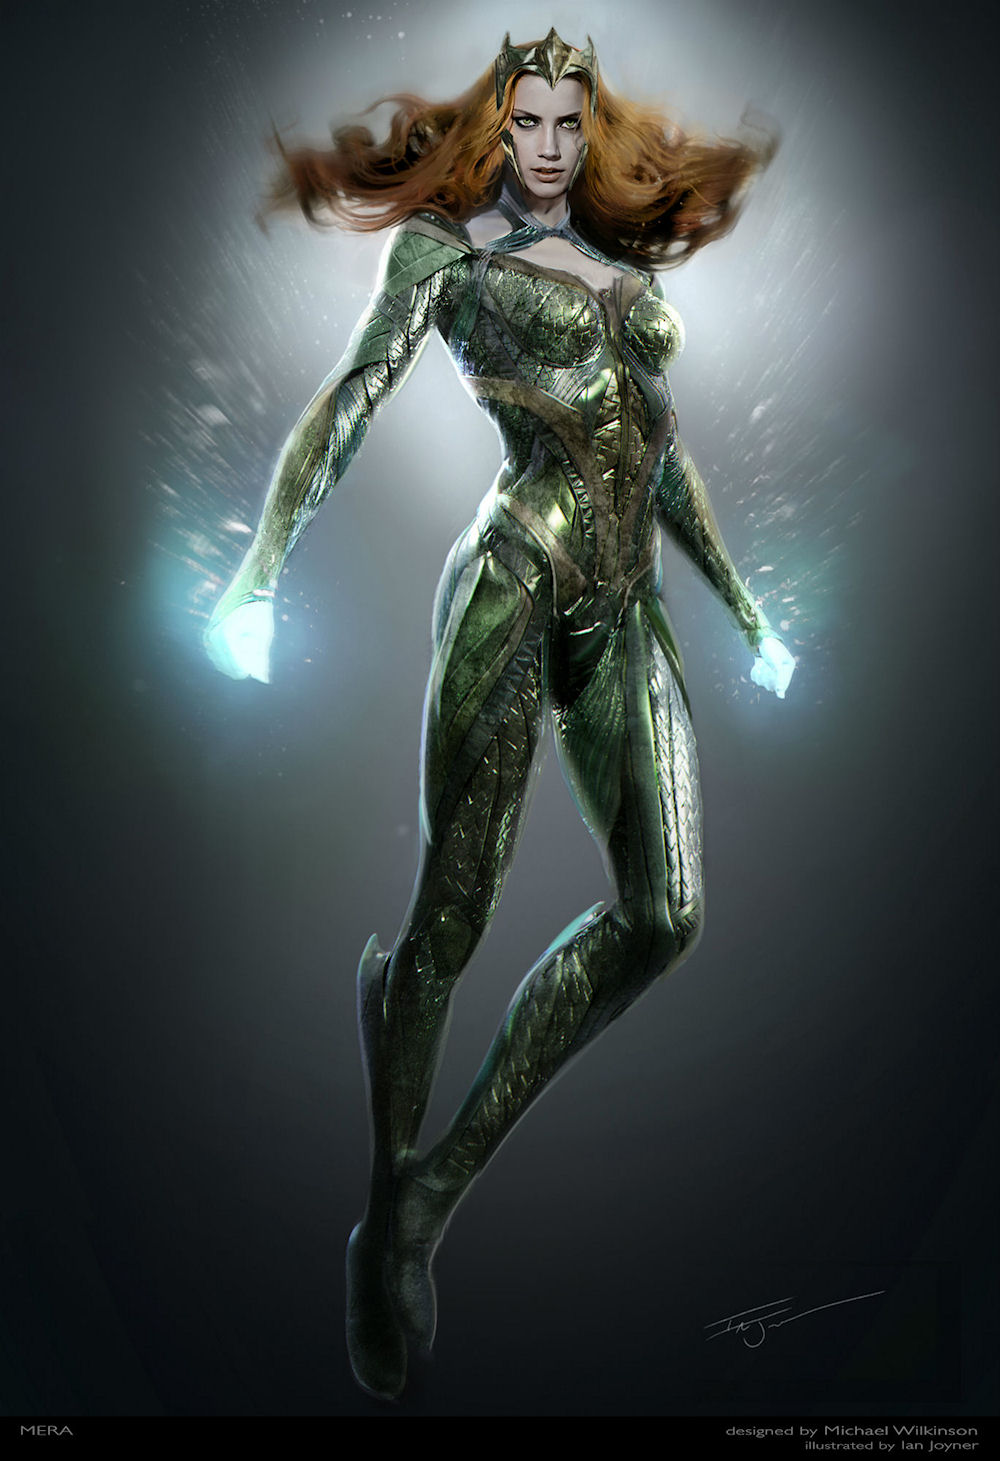 Concept art for Mera's costume. (Photo designed by Michael Wilkinson / courtesy of Warner Bros. Pictures & DC Comics)